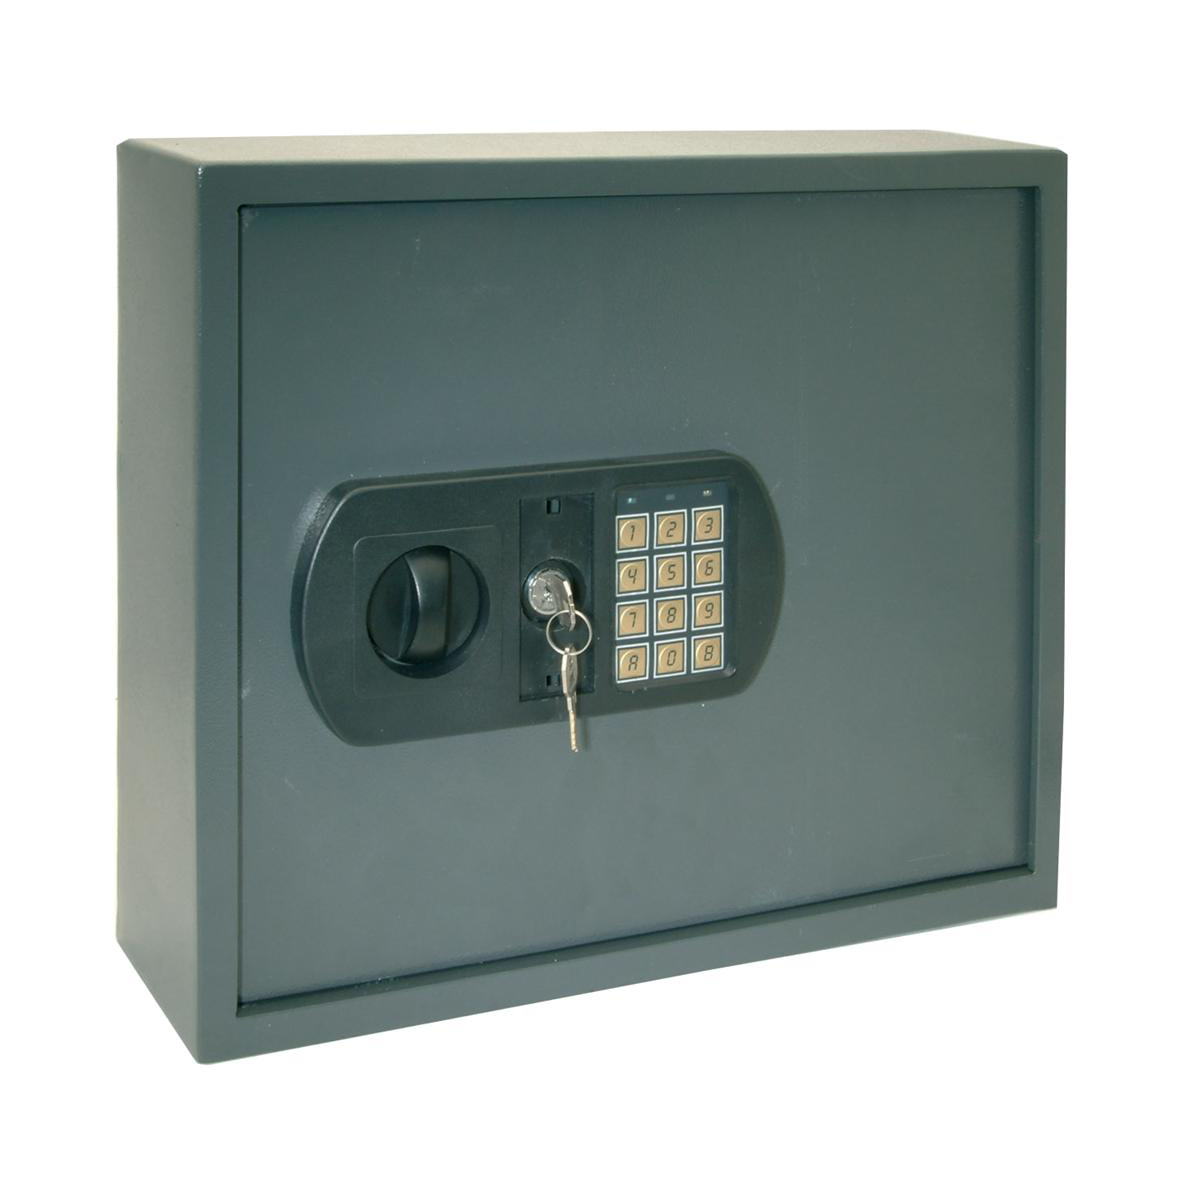 Key cabinets or organizers High Security Key Safe Electronic Key Pad and 30mm Double Bolt Locking 60 Keys